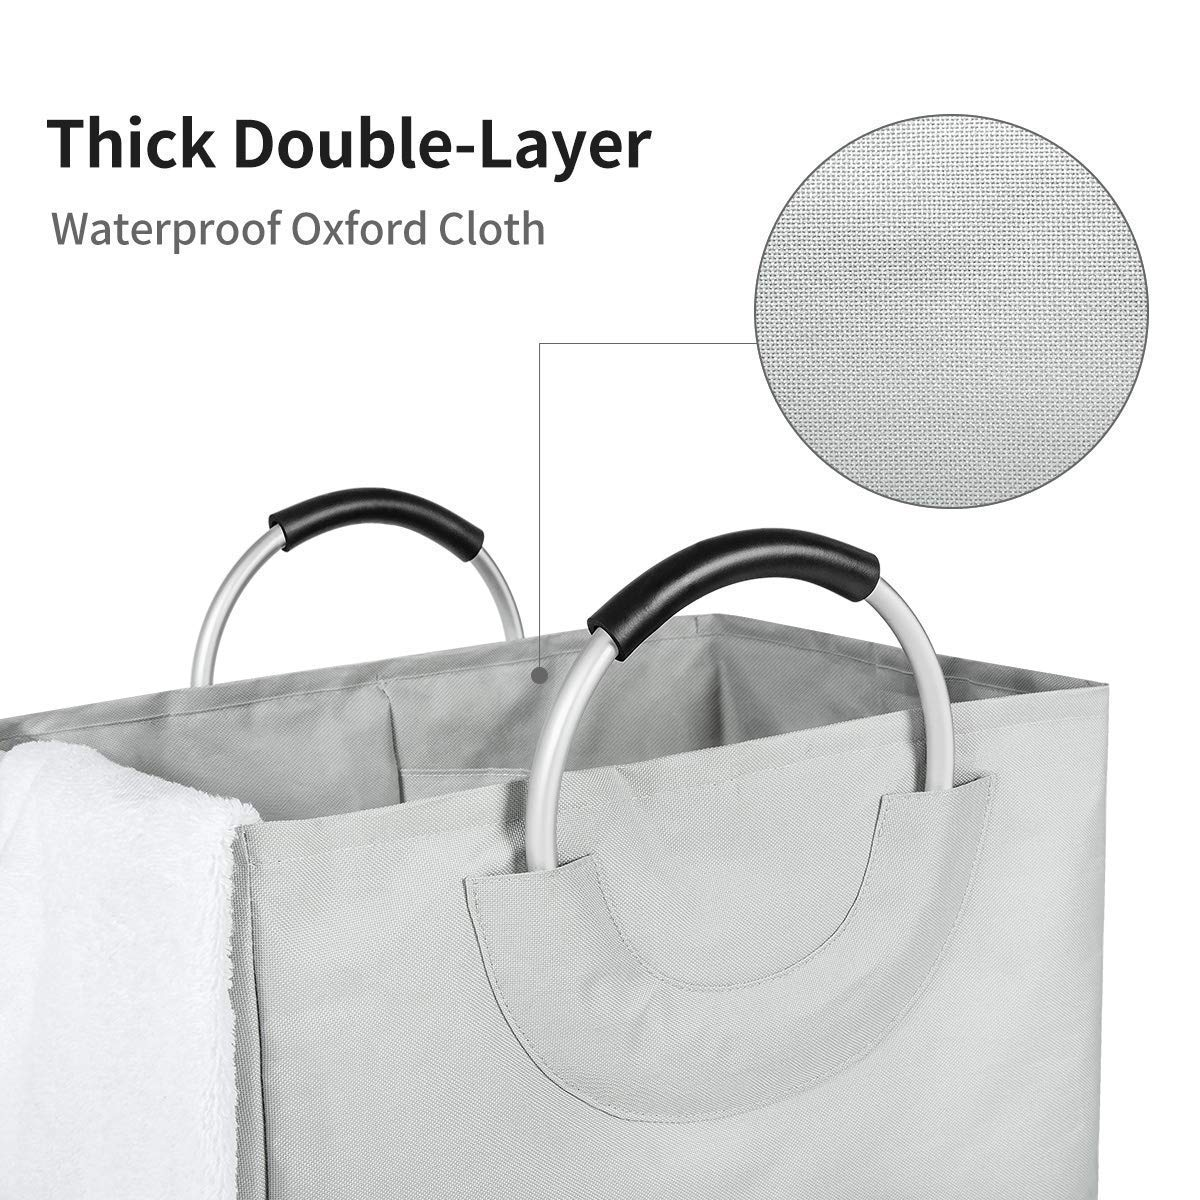 WISHPOOL Double Large Foldable Laundry Hamper Divided Handy Stand Collapsible Laundry Basket Waterproof Bag Bin Organizer Storage Corner with Handles (Lightgrey)